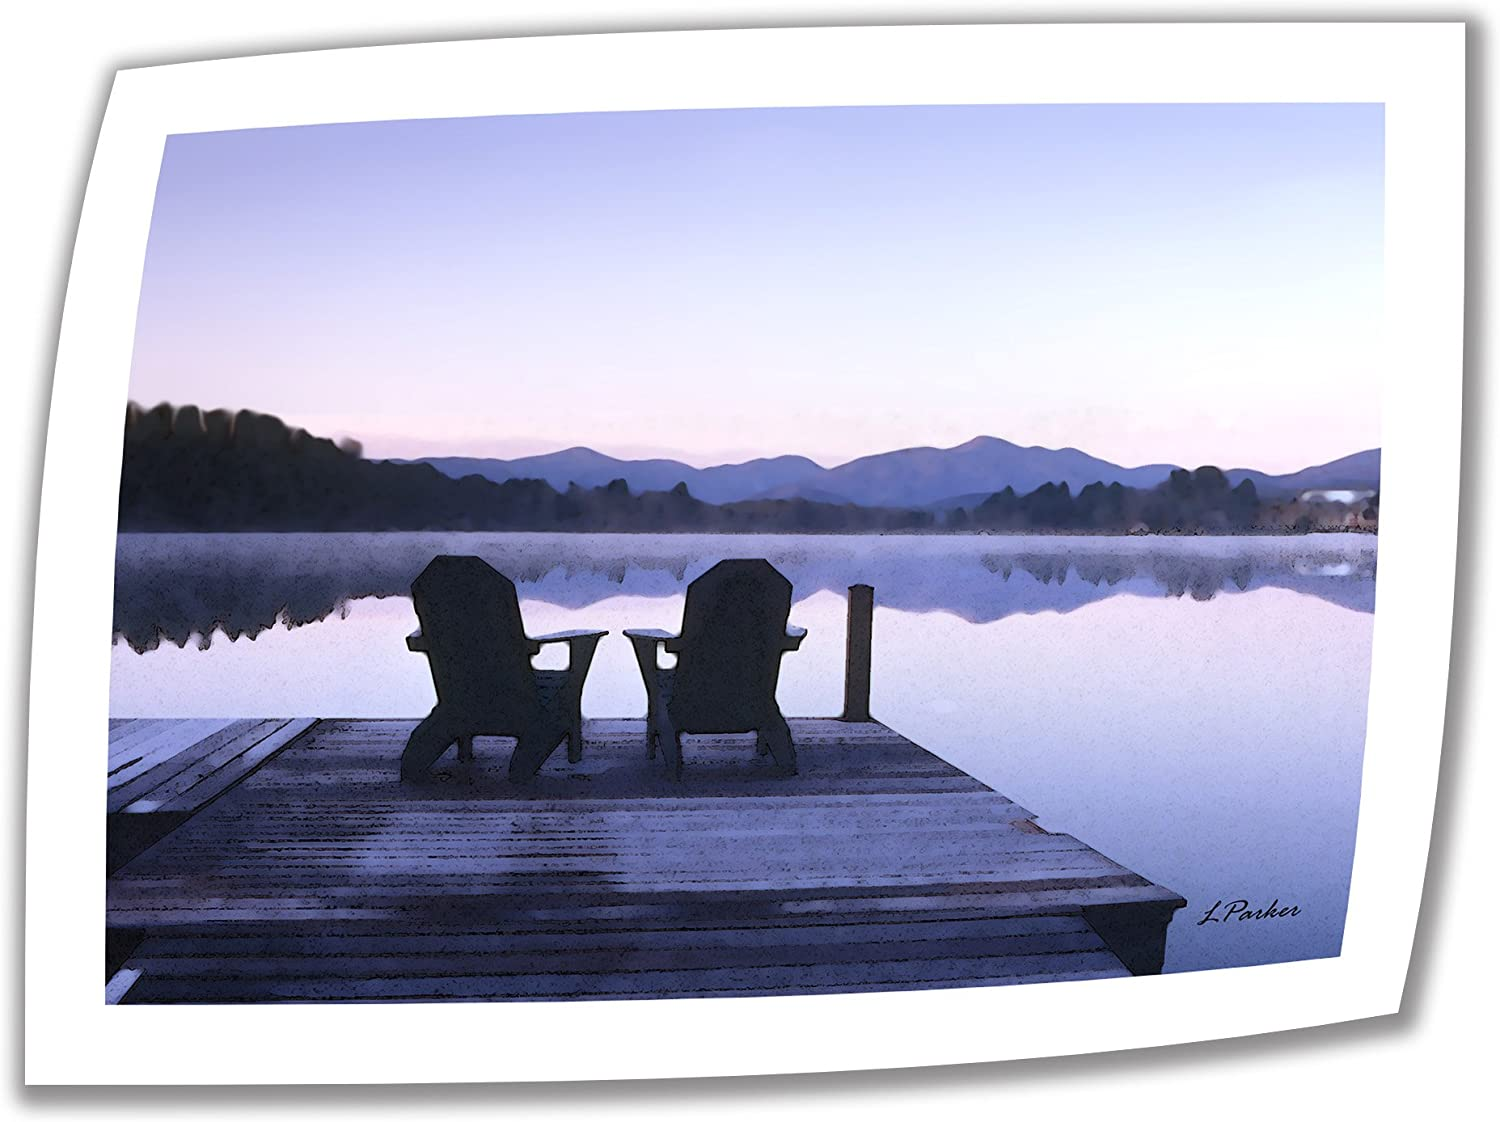 Art Wall Mirror Lake, Lake Placid 14 by 18-Inch Unwrapped Canvas Art by Linda Parker with 2-Inch Accent Border